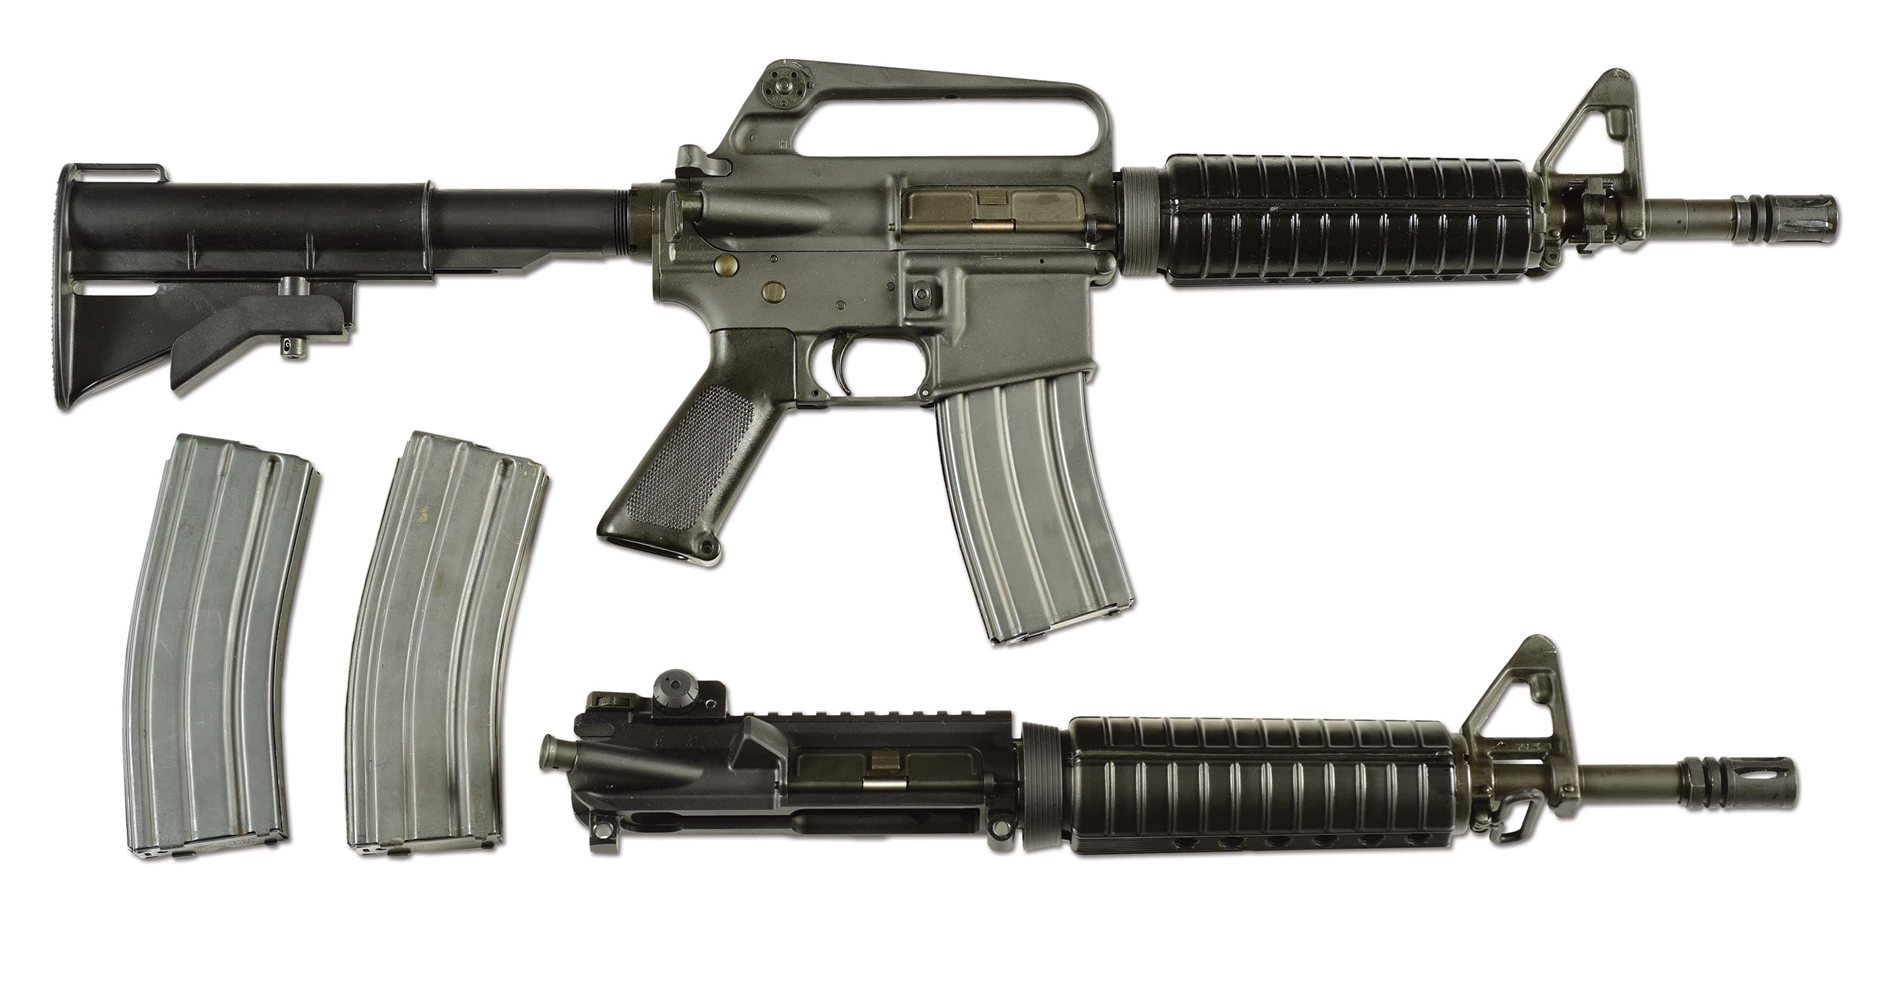 (N) BEAUTIFUL ORIGINAL COLT M16A1 MACHINE GUN IN COMMANDO CONFIGURATION WITH SPARE UPPER ASSEMBLY (FULLY TRANSFERABLE).